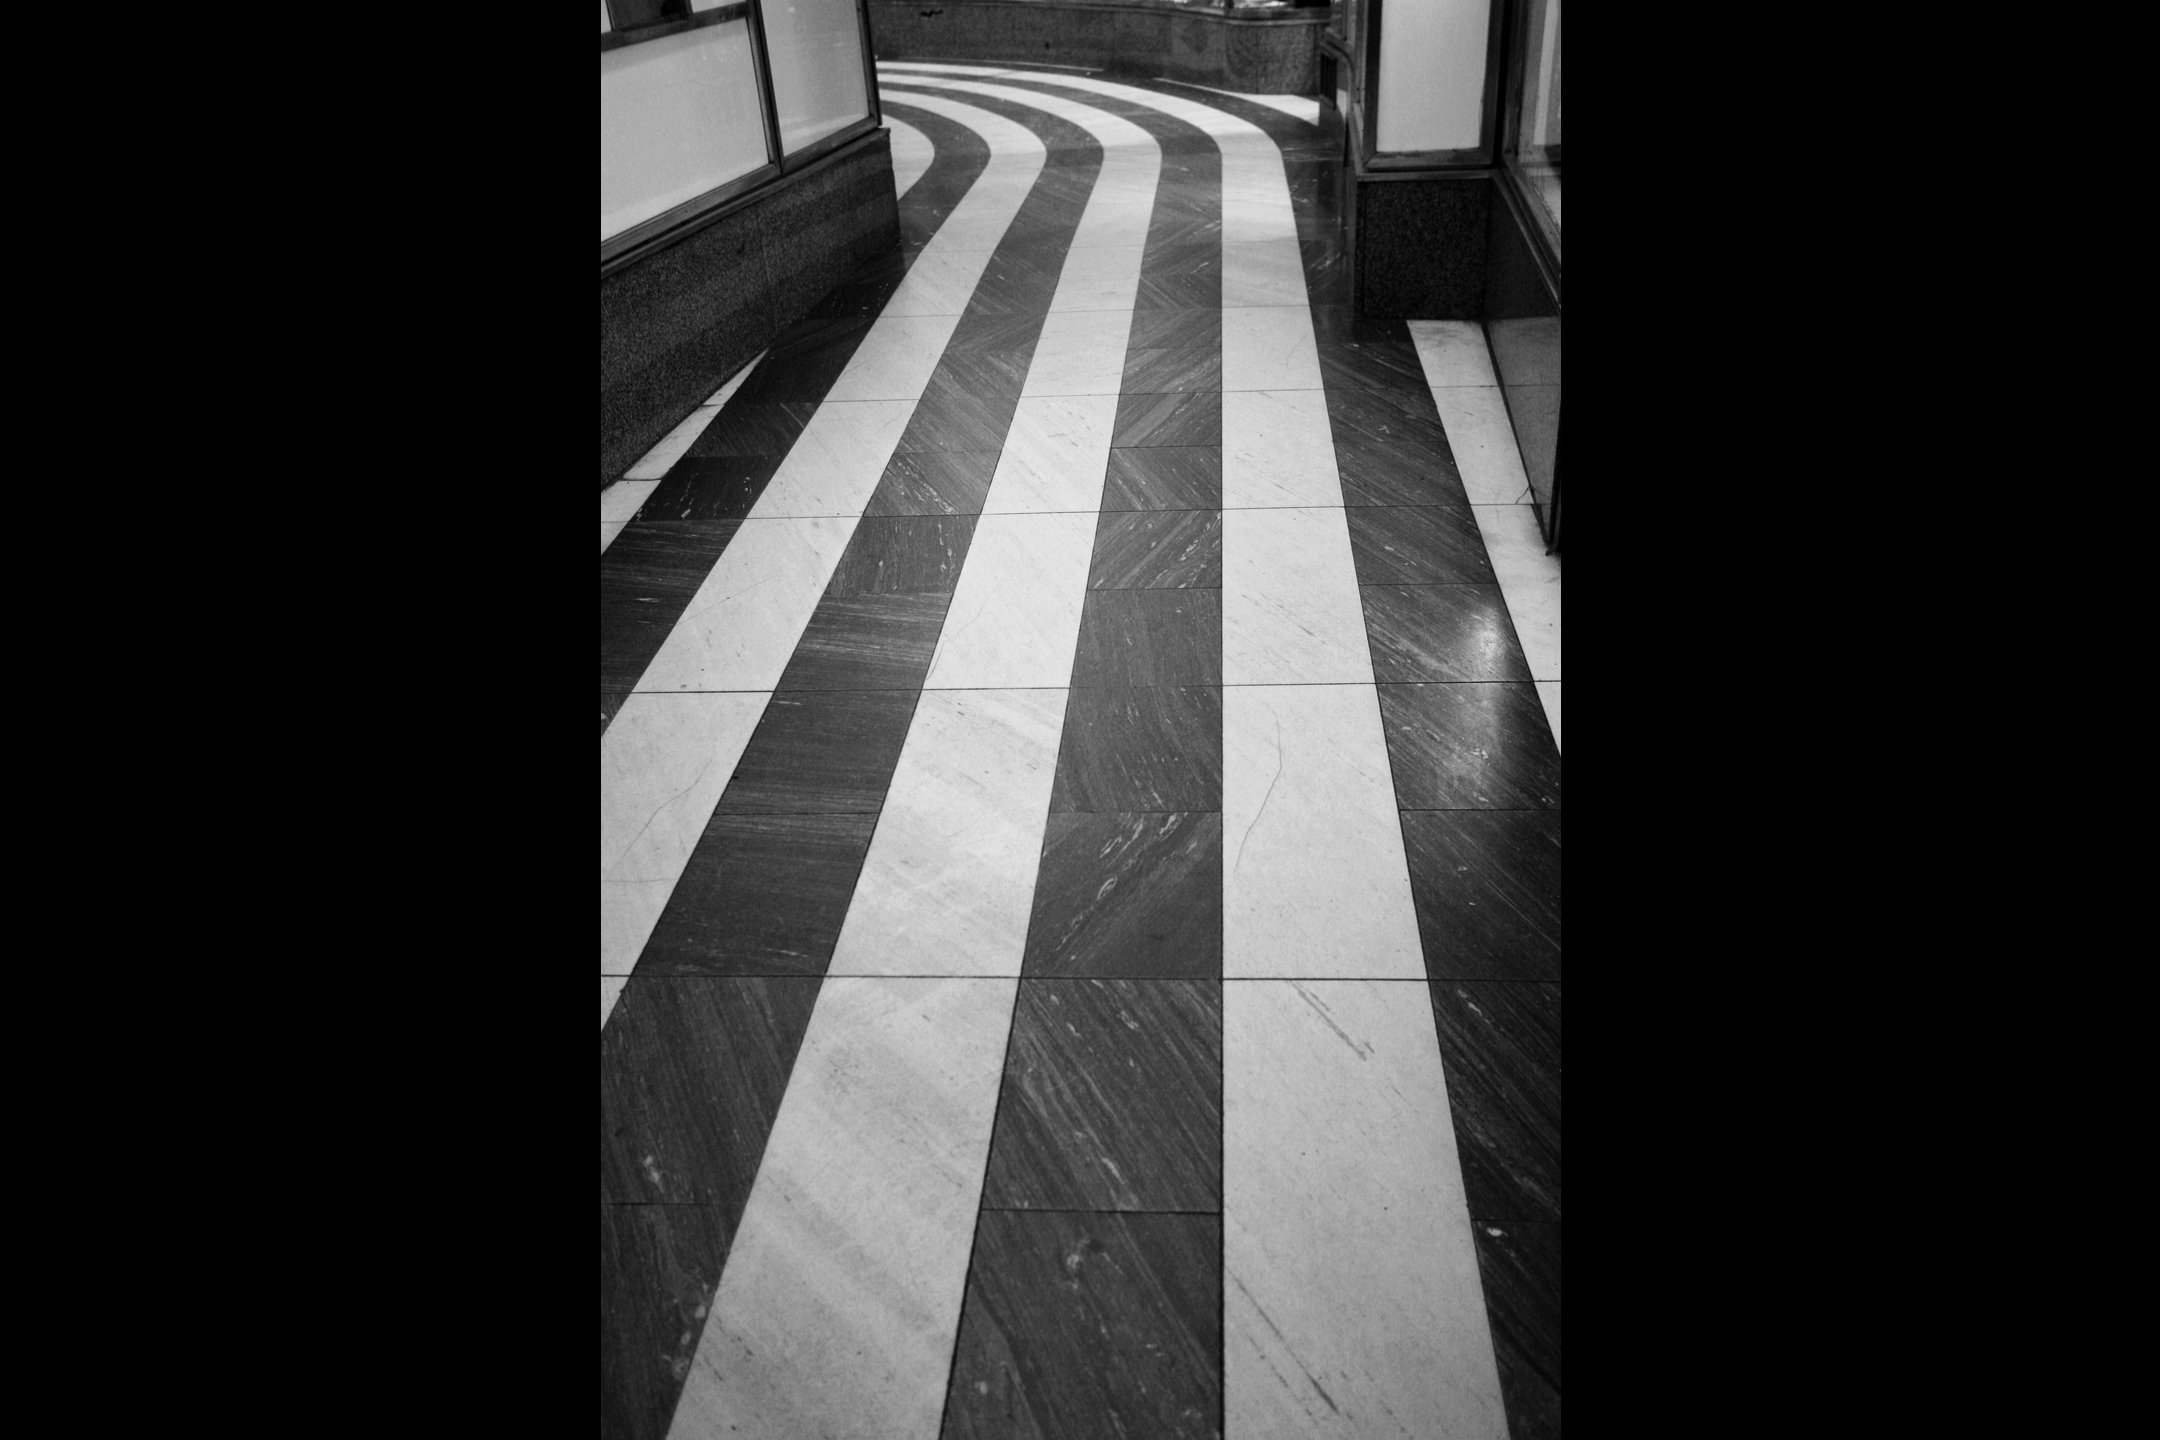 Floor_stripes1.jpg